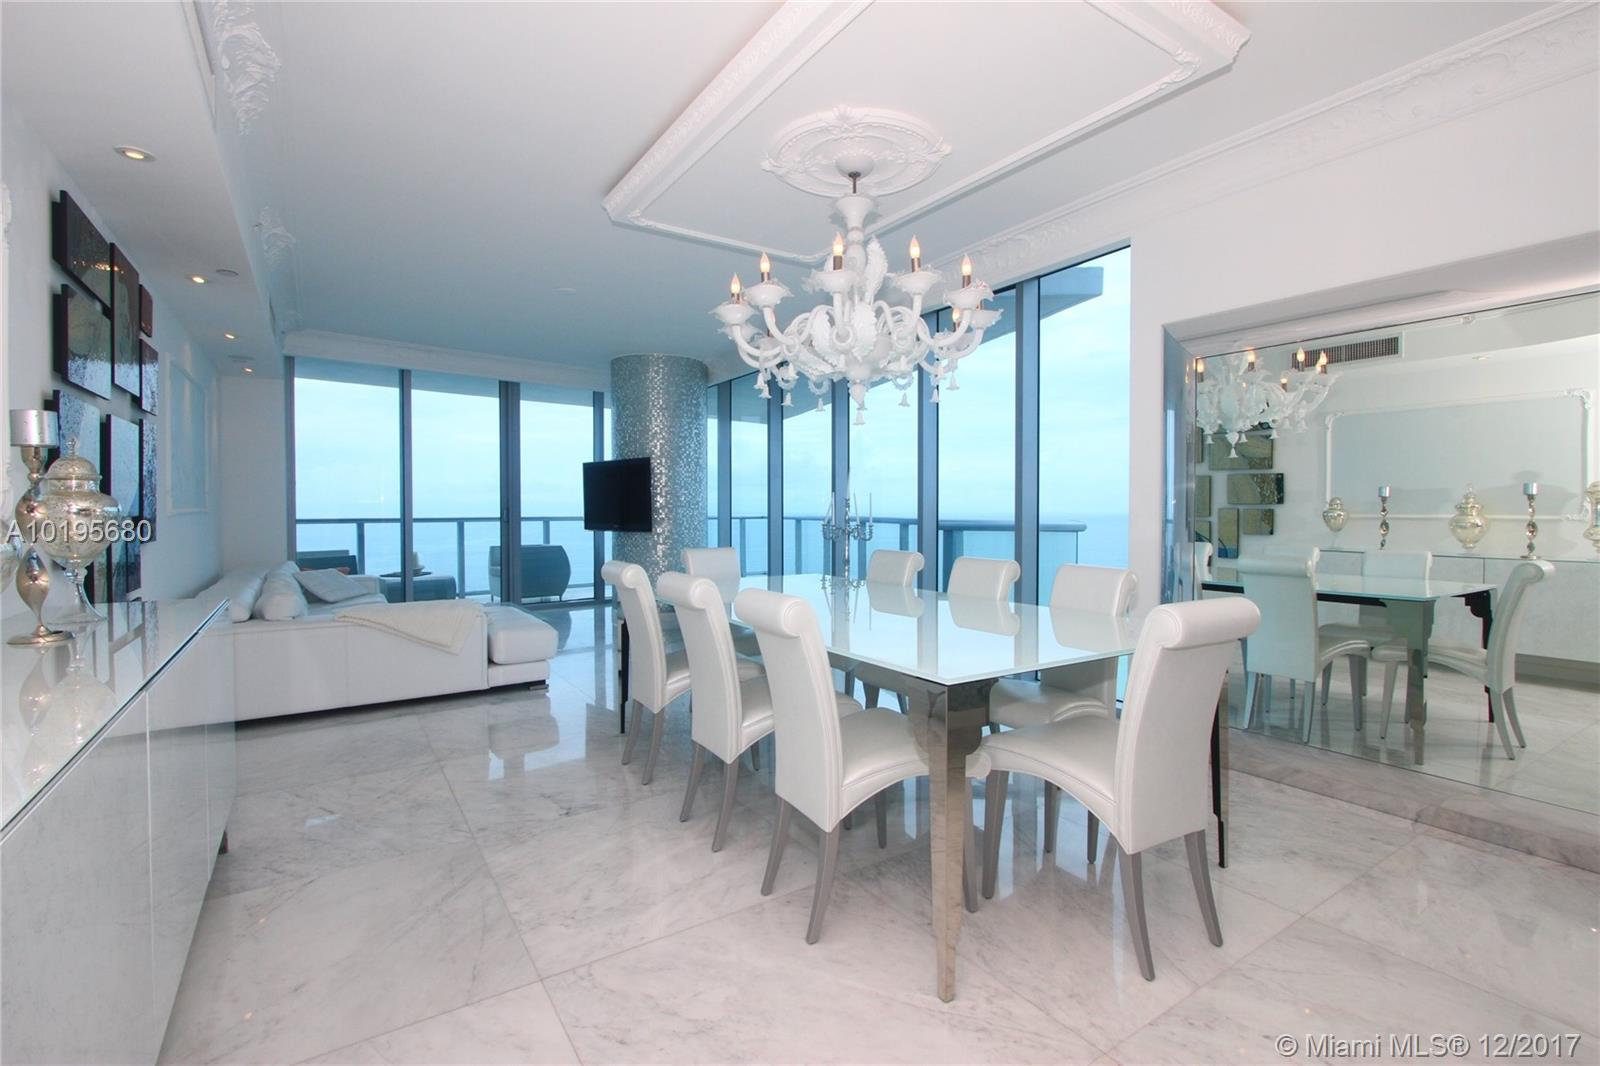 Spectacular Direct Ocean Views From This Professionally Designed And Furnished Se Corner Unit. 3 Bedroom / 3.5 Baths. In Exclusive Jade Beach In Sunny Isles! Top Of The Line Finishes, Modern - Glamour Style! No Pets! 6 Month Minimum